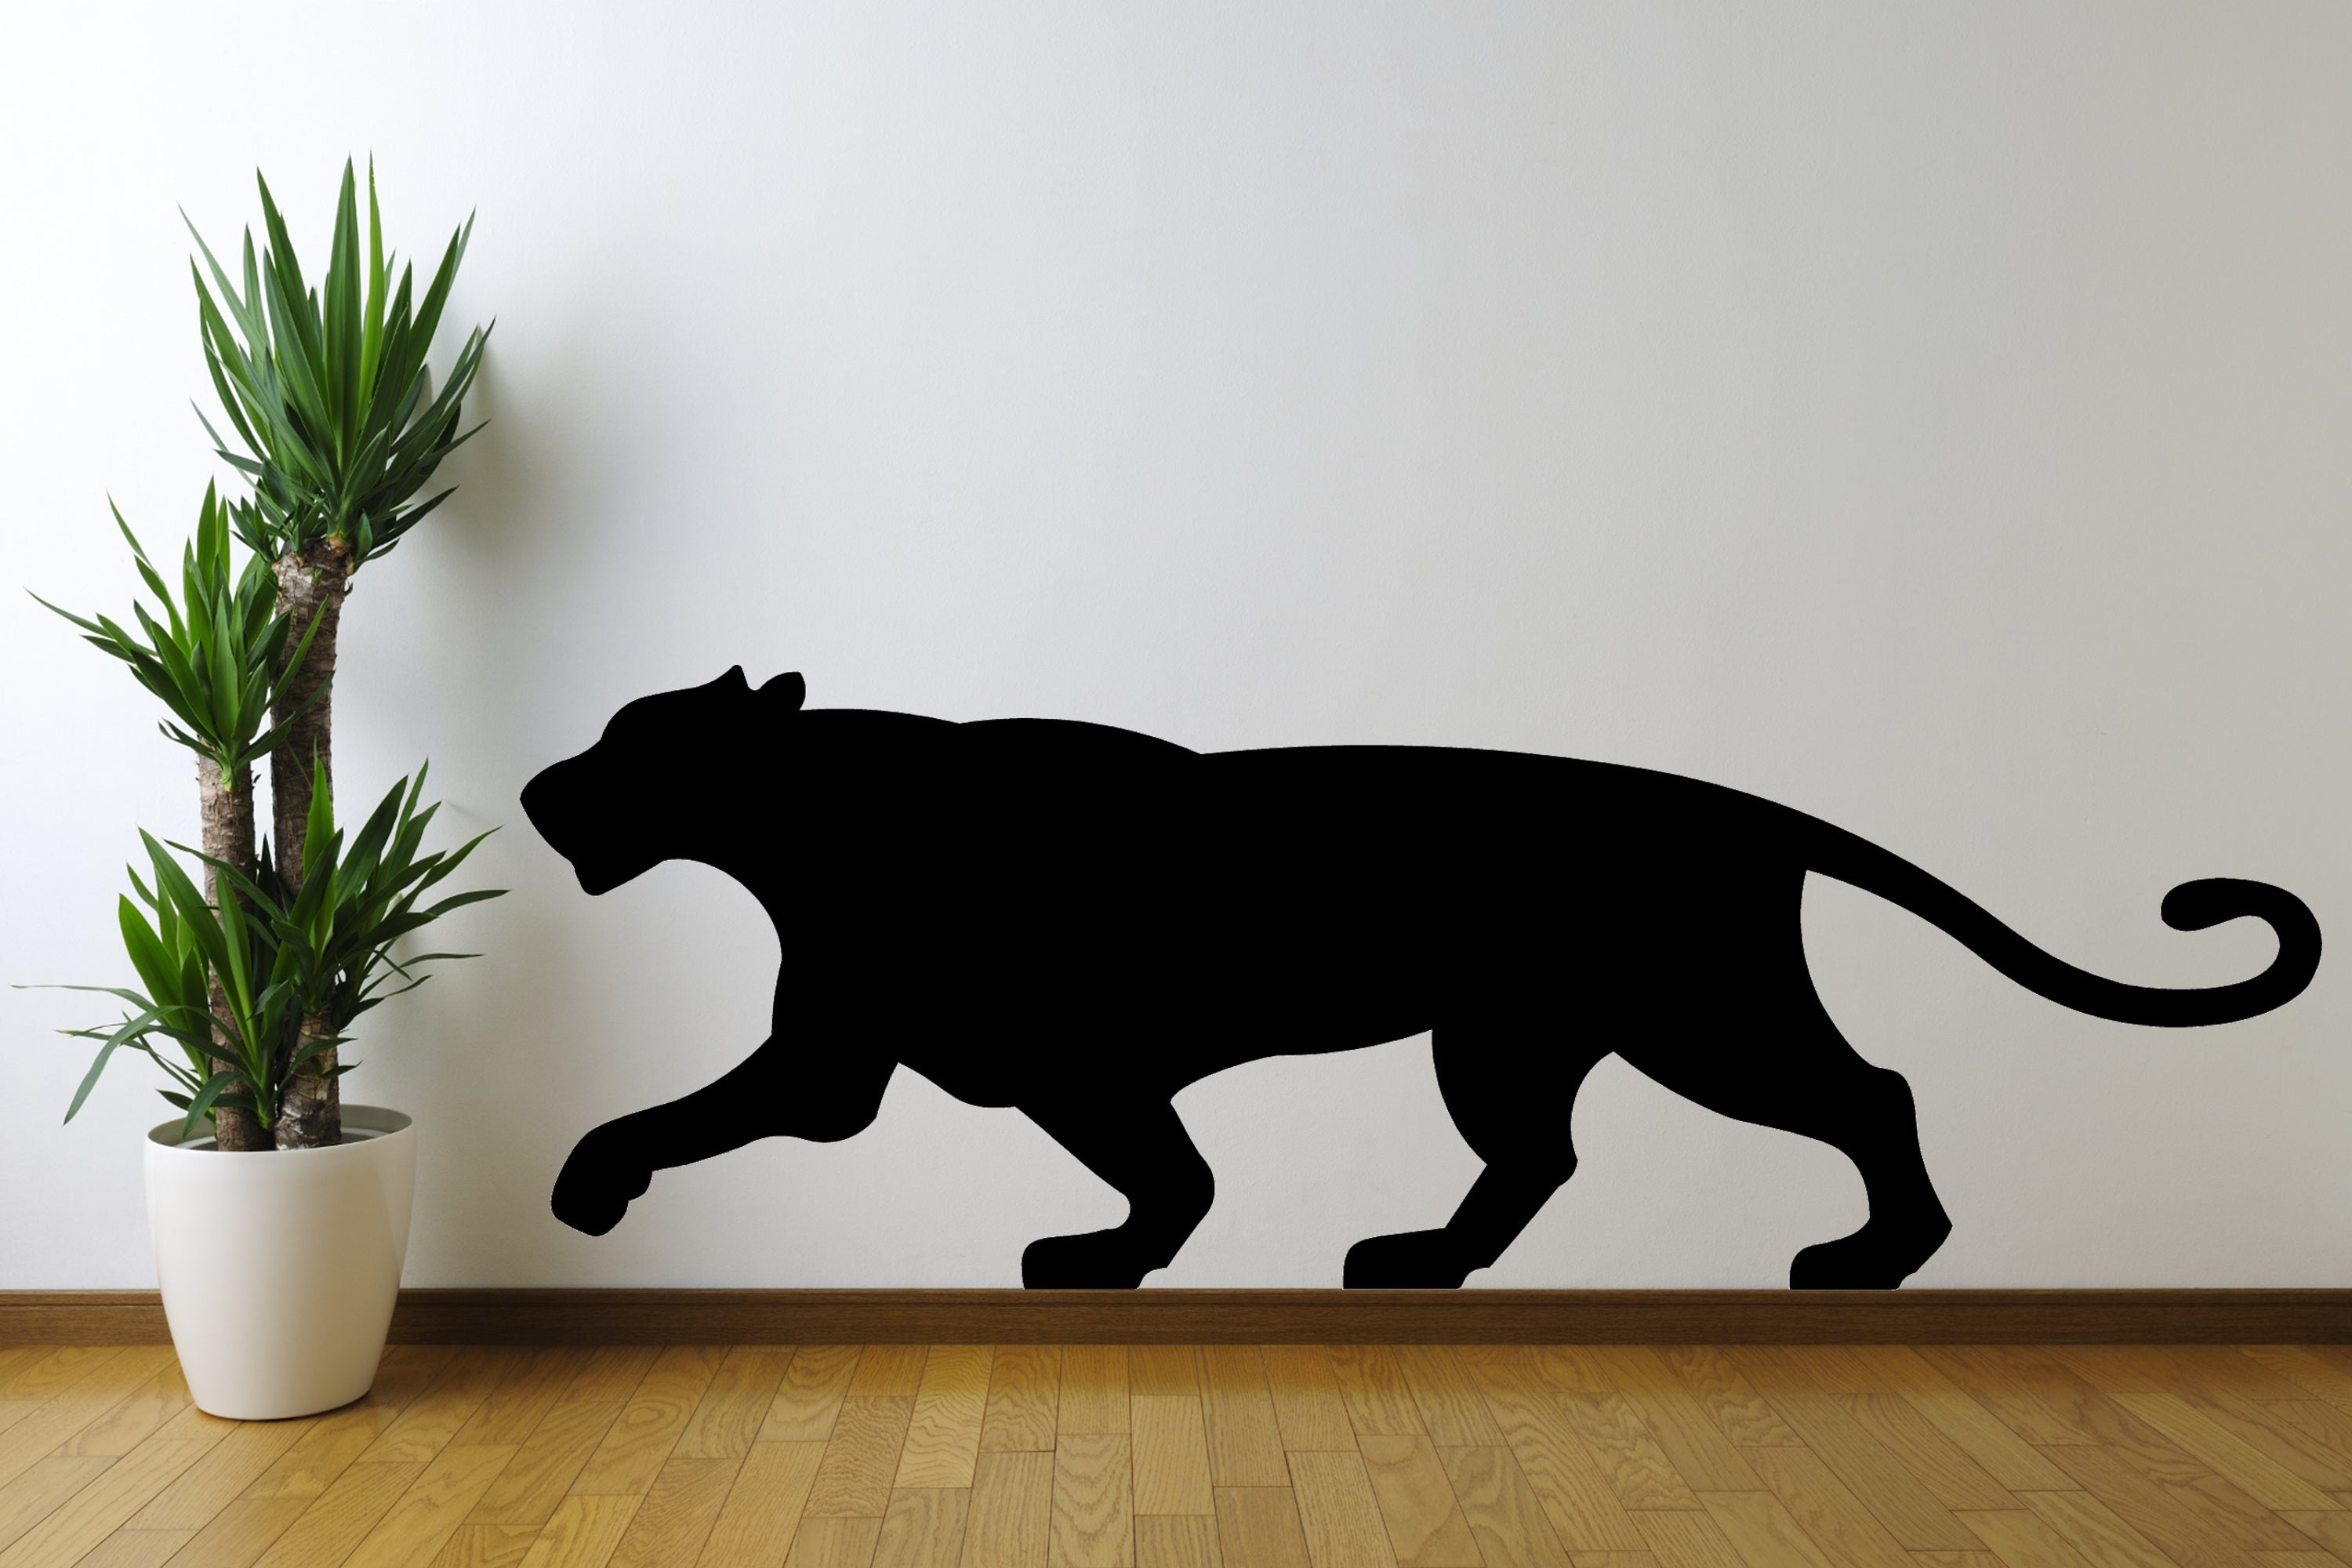 Big Cat 3D Silhouette - Cutting Image